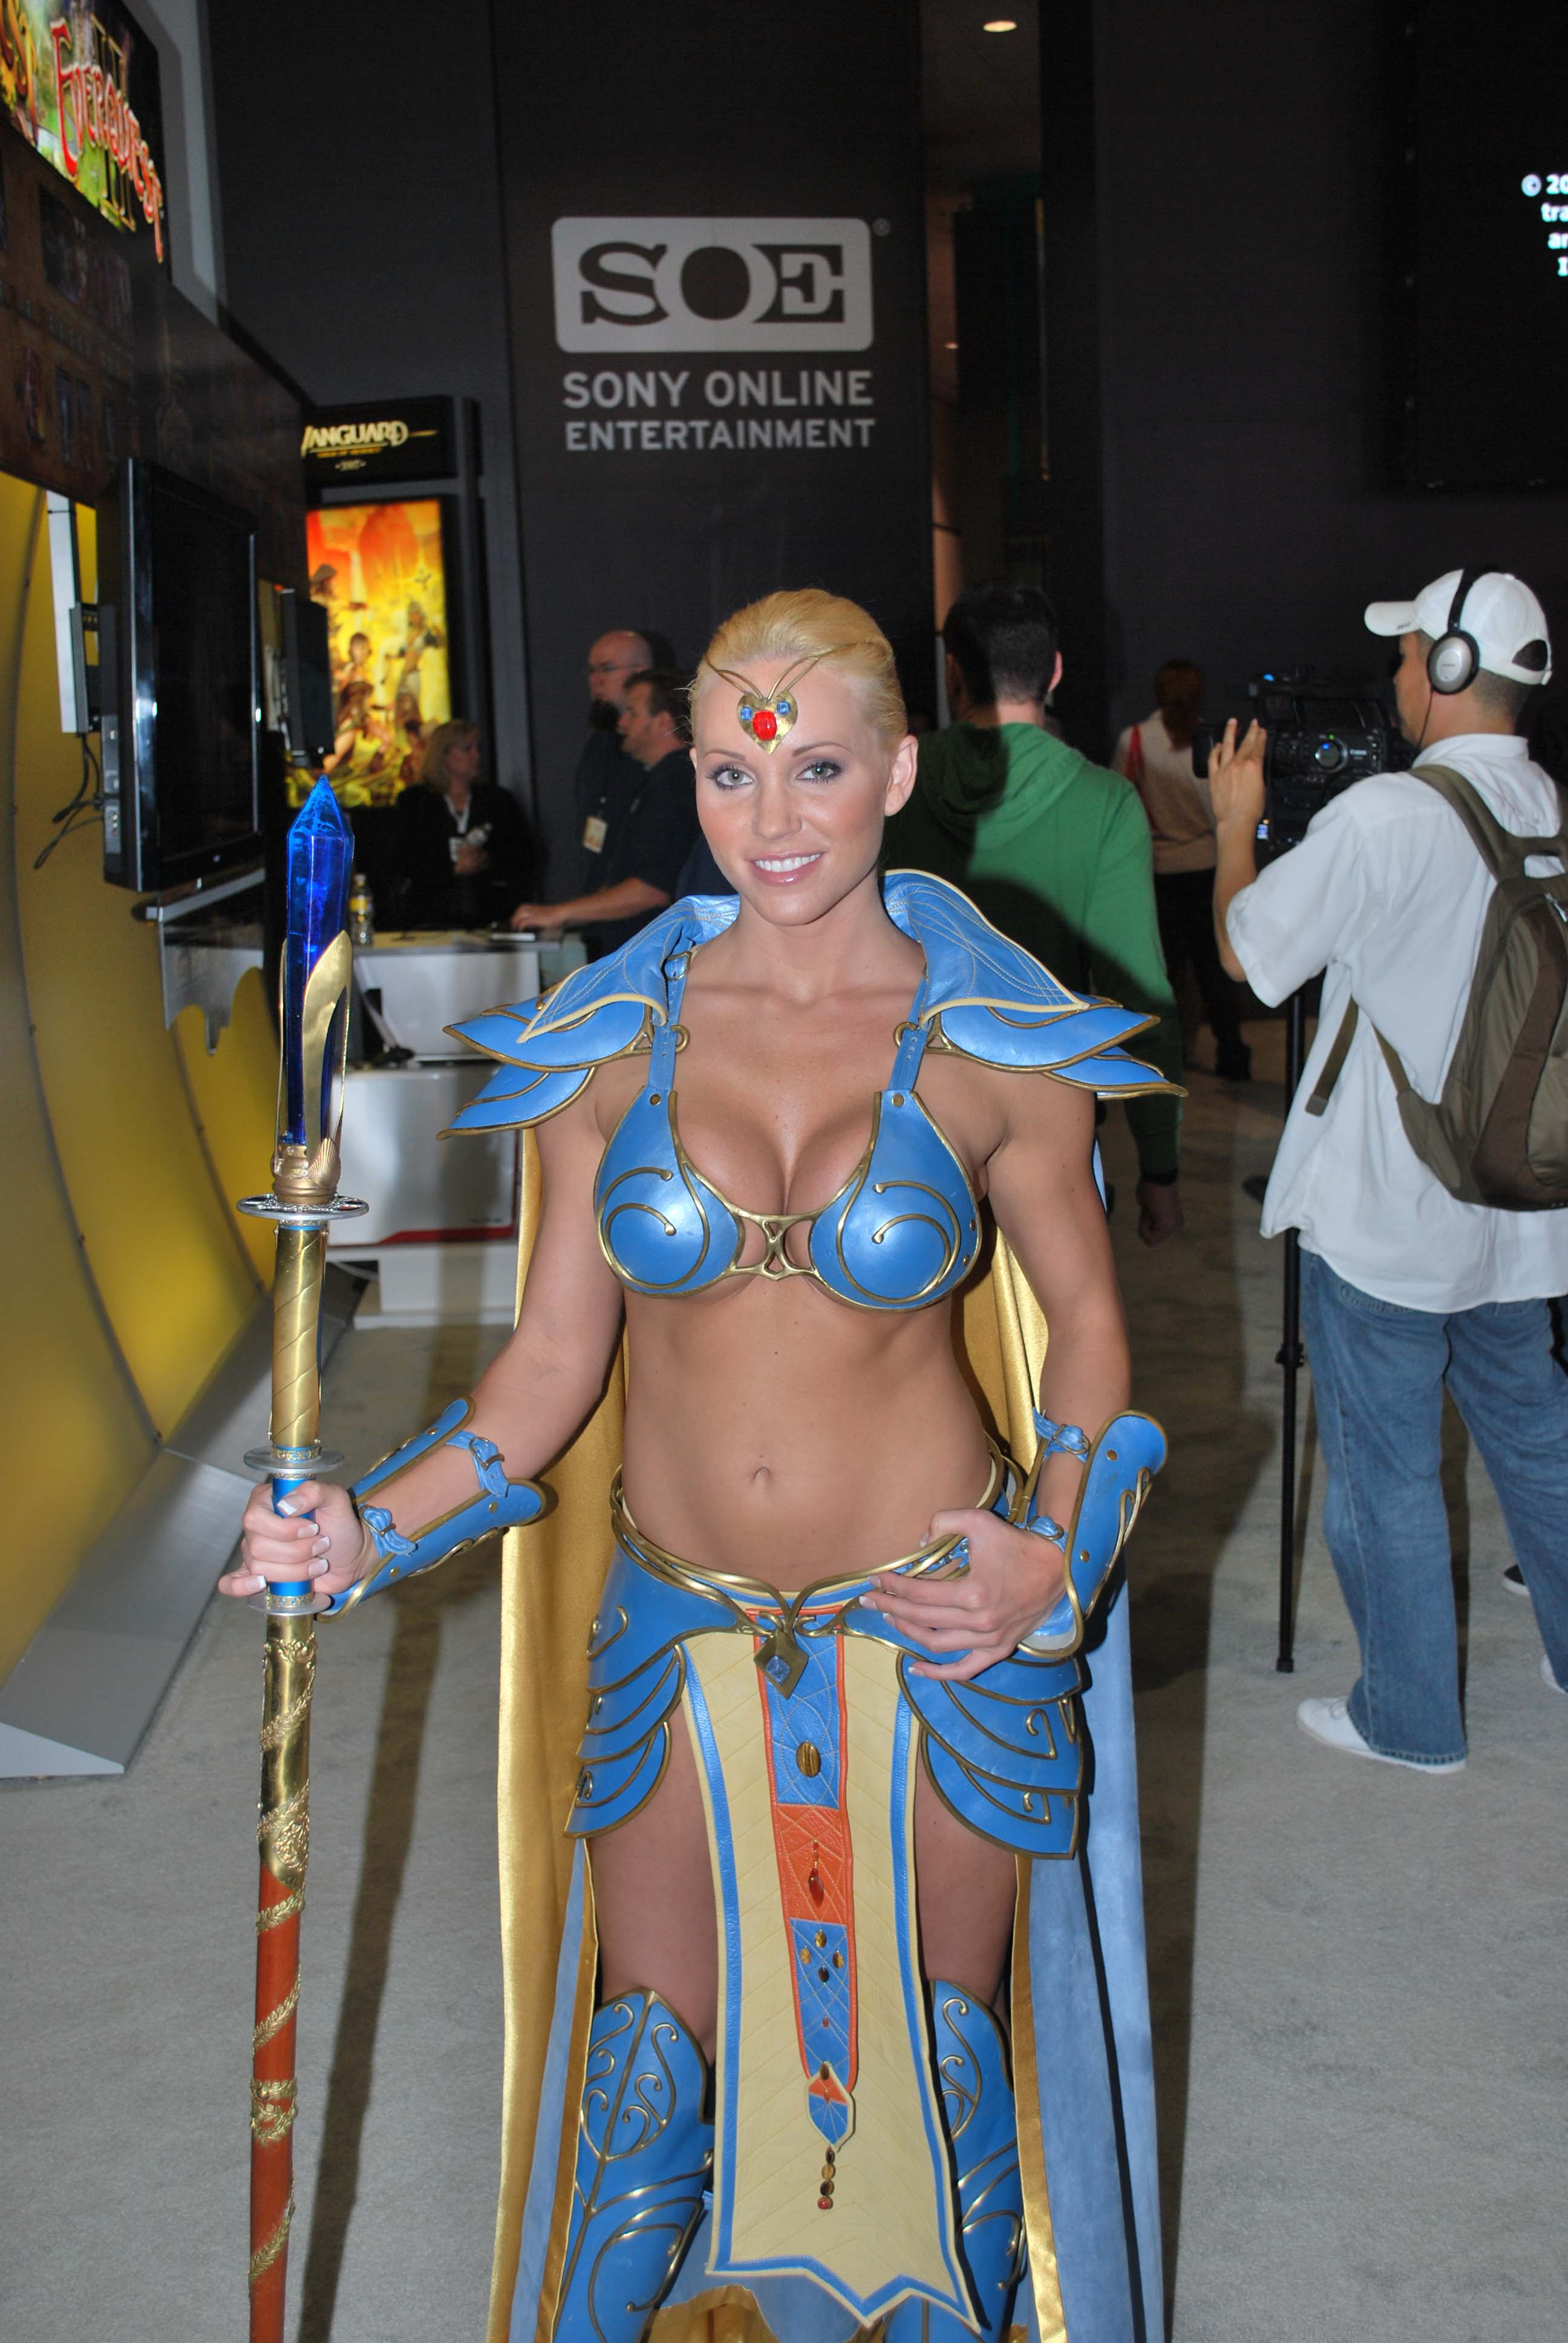 e3 2009 EQ cosplay booth babe